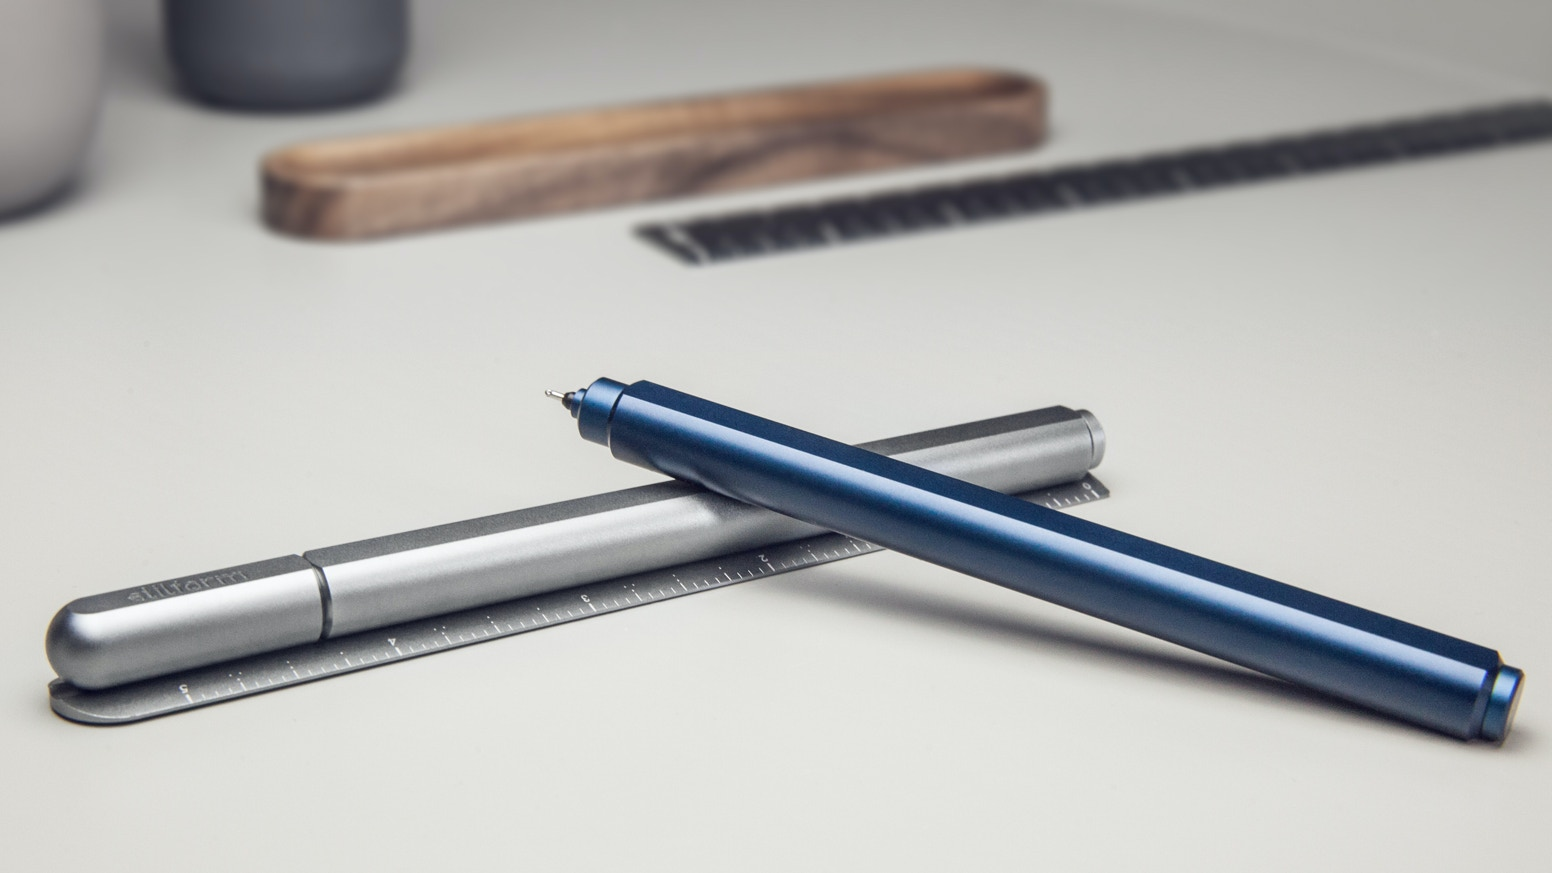 A Minimalist Gel Ink Pen with a Magnetic Self-Aligning Mechanism and an Innovative Ruler Cap. Fun to fidget!